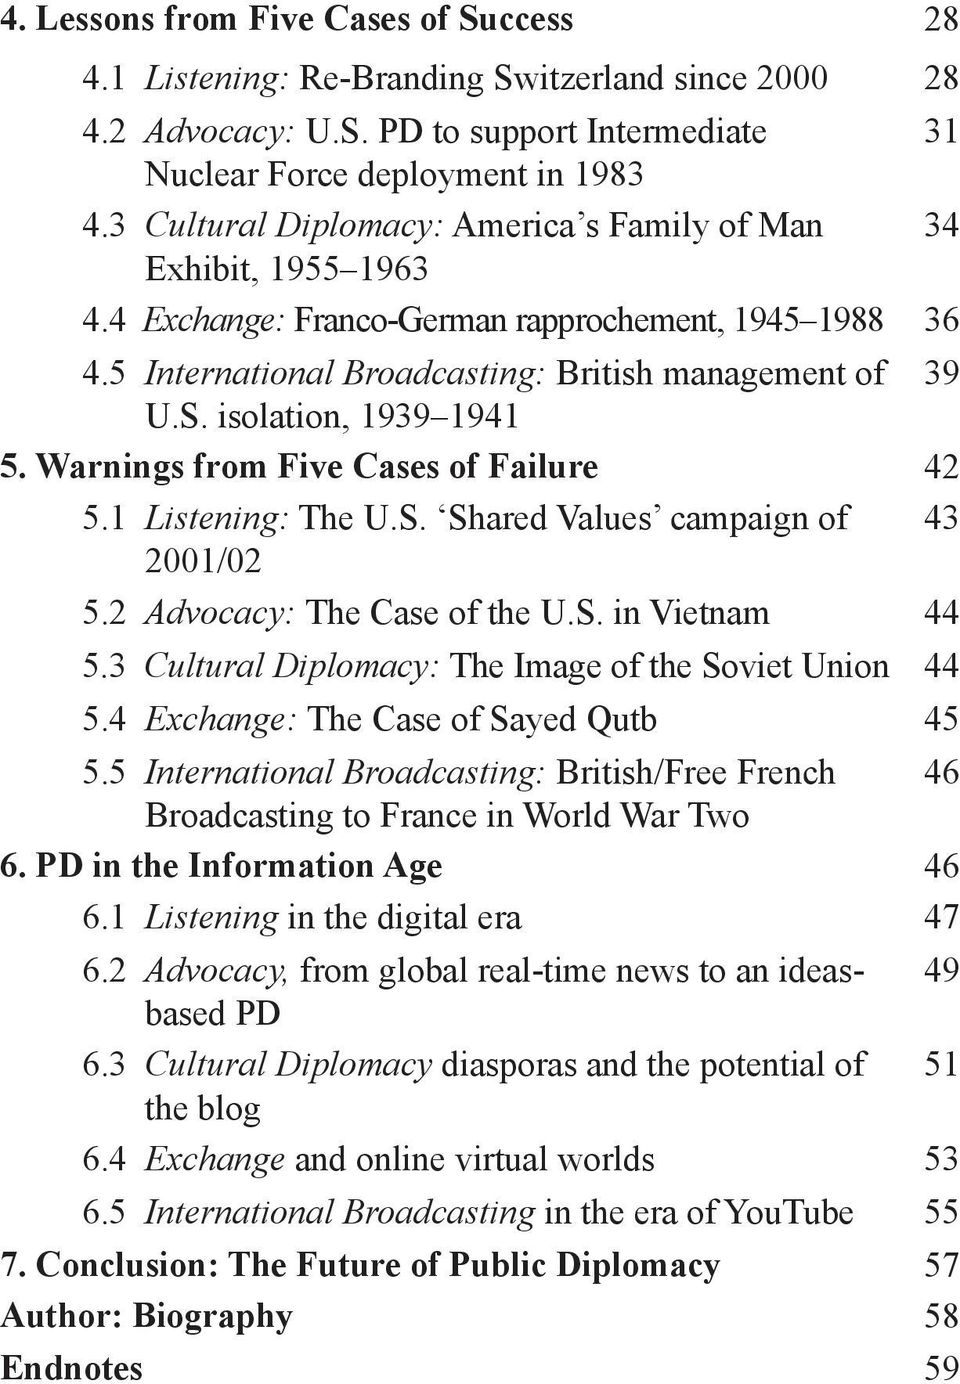 isolation, 1939 1941 5. Warnings from Five Cases of Failure 42 5.1 Listening: The U.S. Shared Values campaign of 43 2001/02 5.2 Advocacy: The Case of the U.S. in Vietnam 44 5.